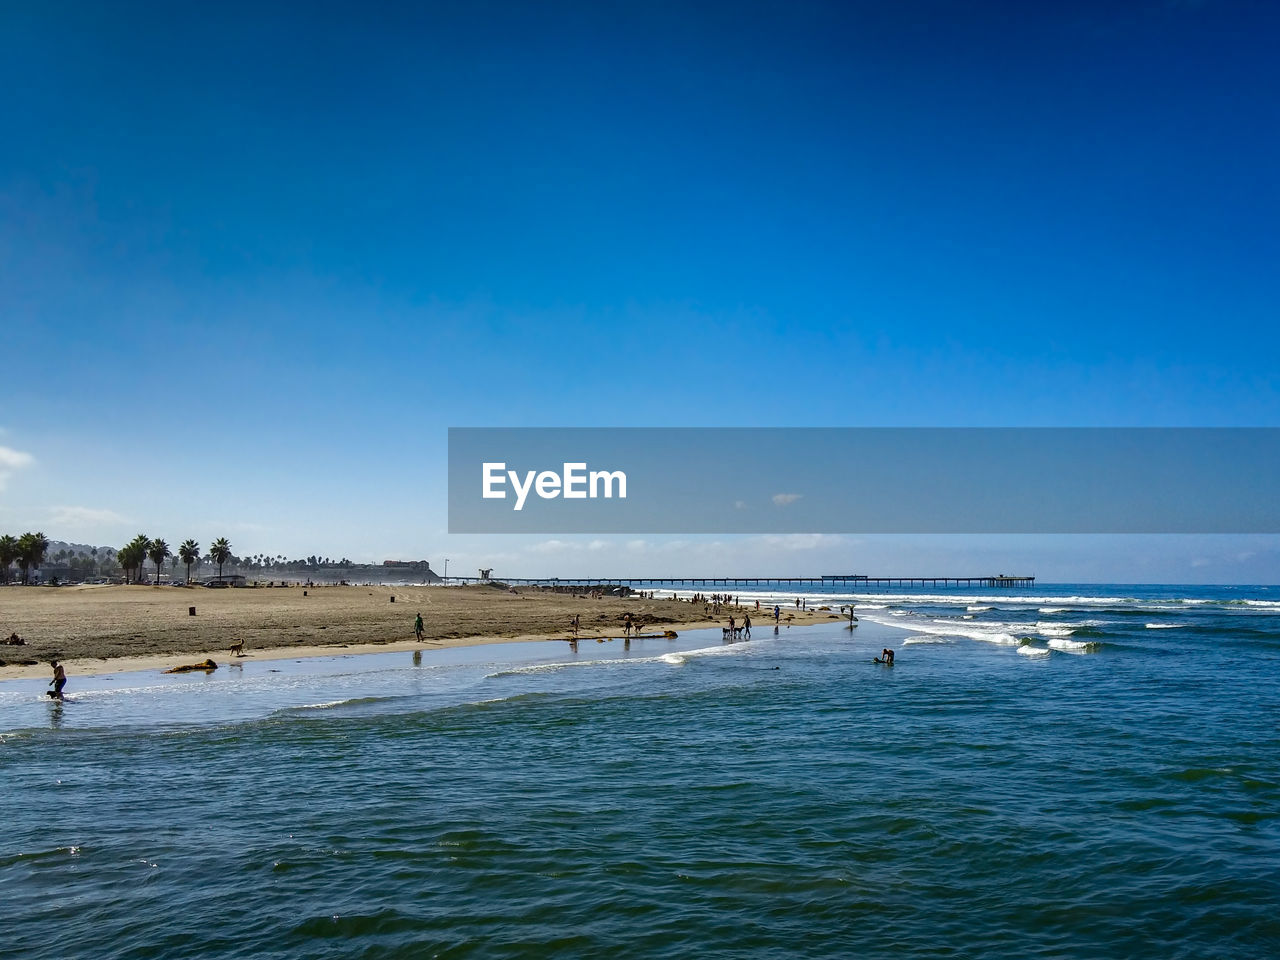 water, blue, sky, sea, scenics - nature, beauty in nature, land, copy space, tranquil scene, waterfront, beach, tranquility, nature, day, non-urban scene, no people, idyllic, outdoors